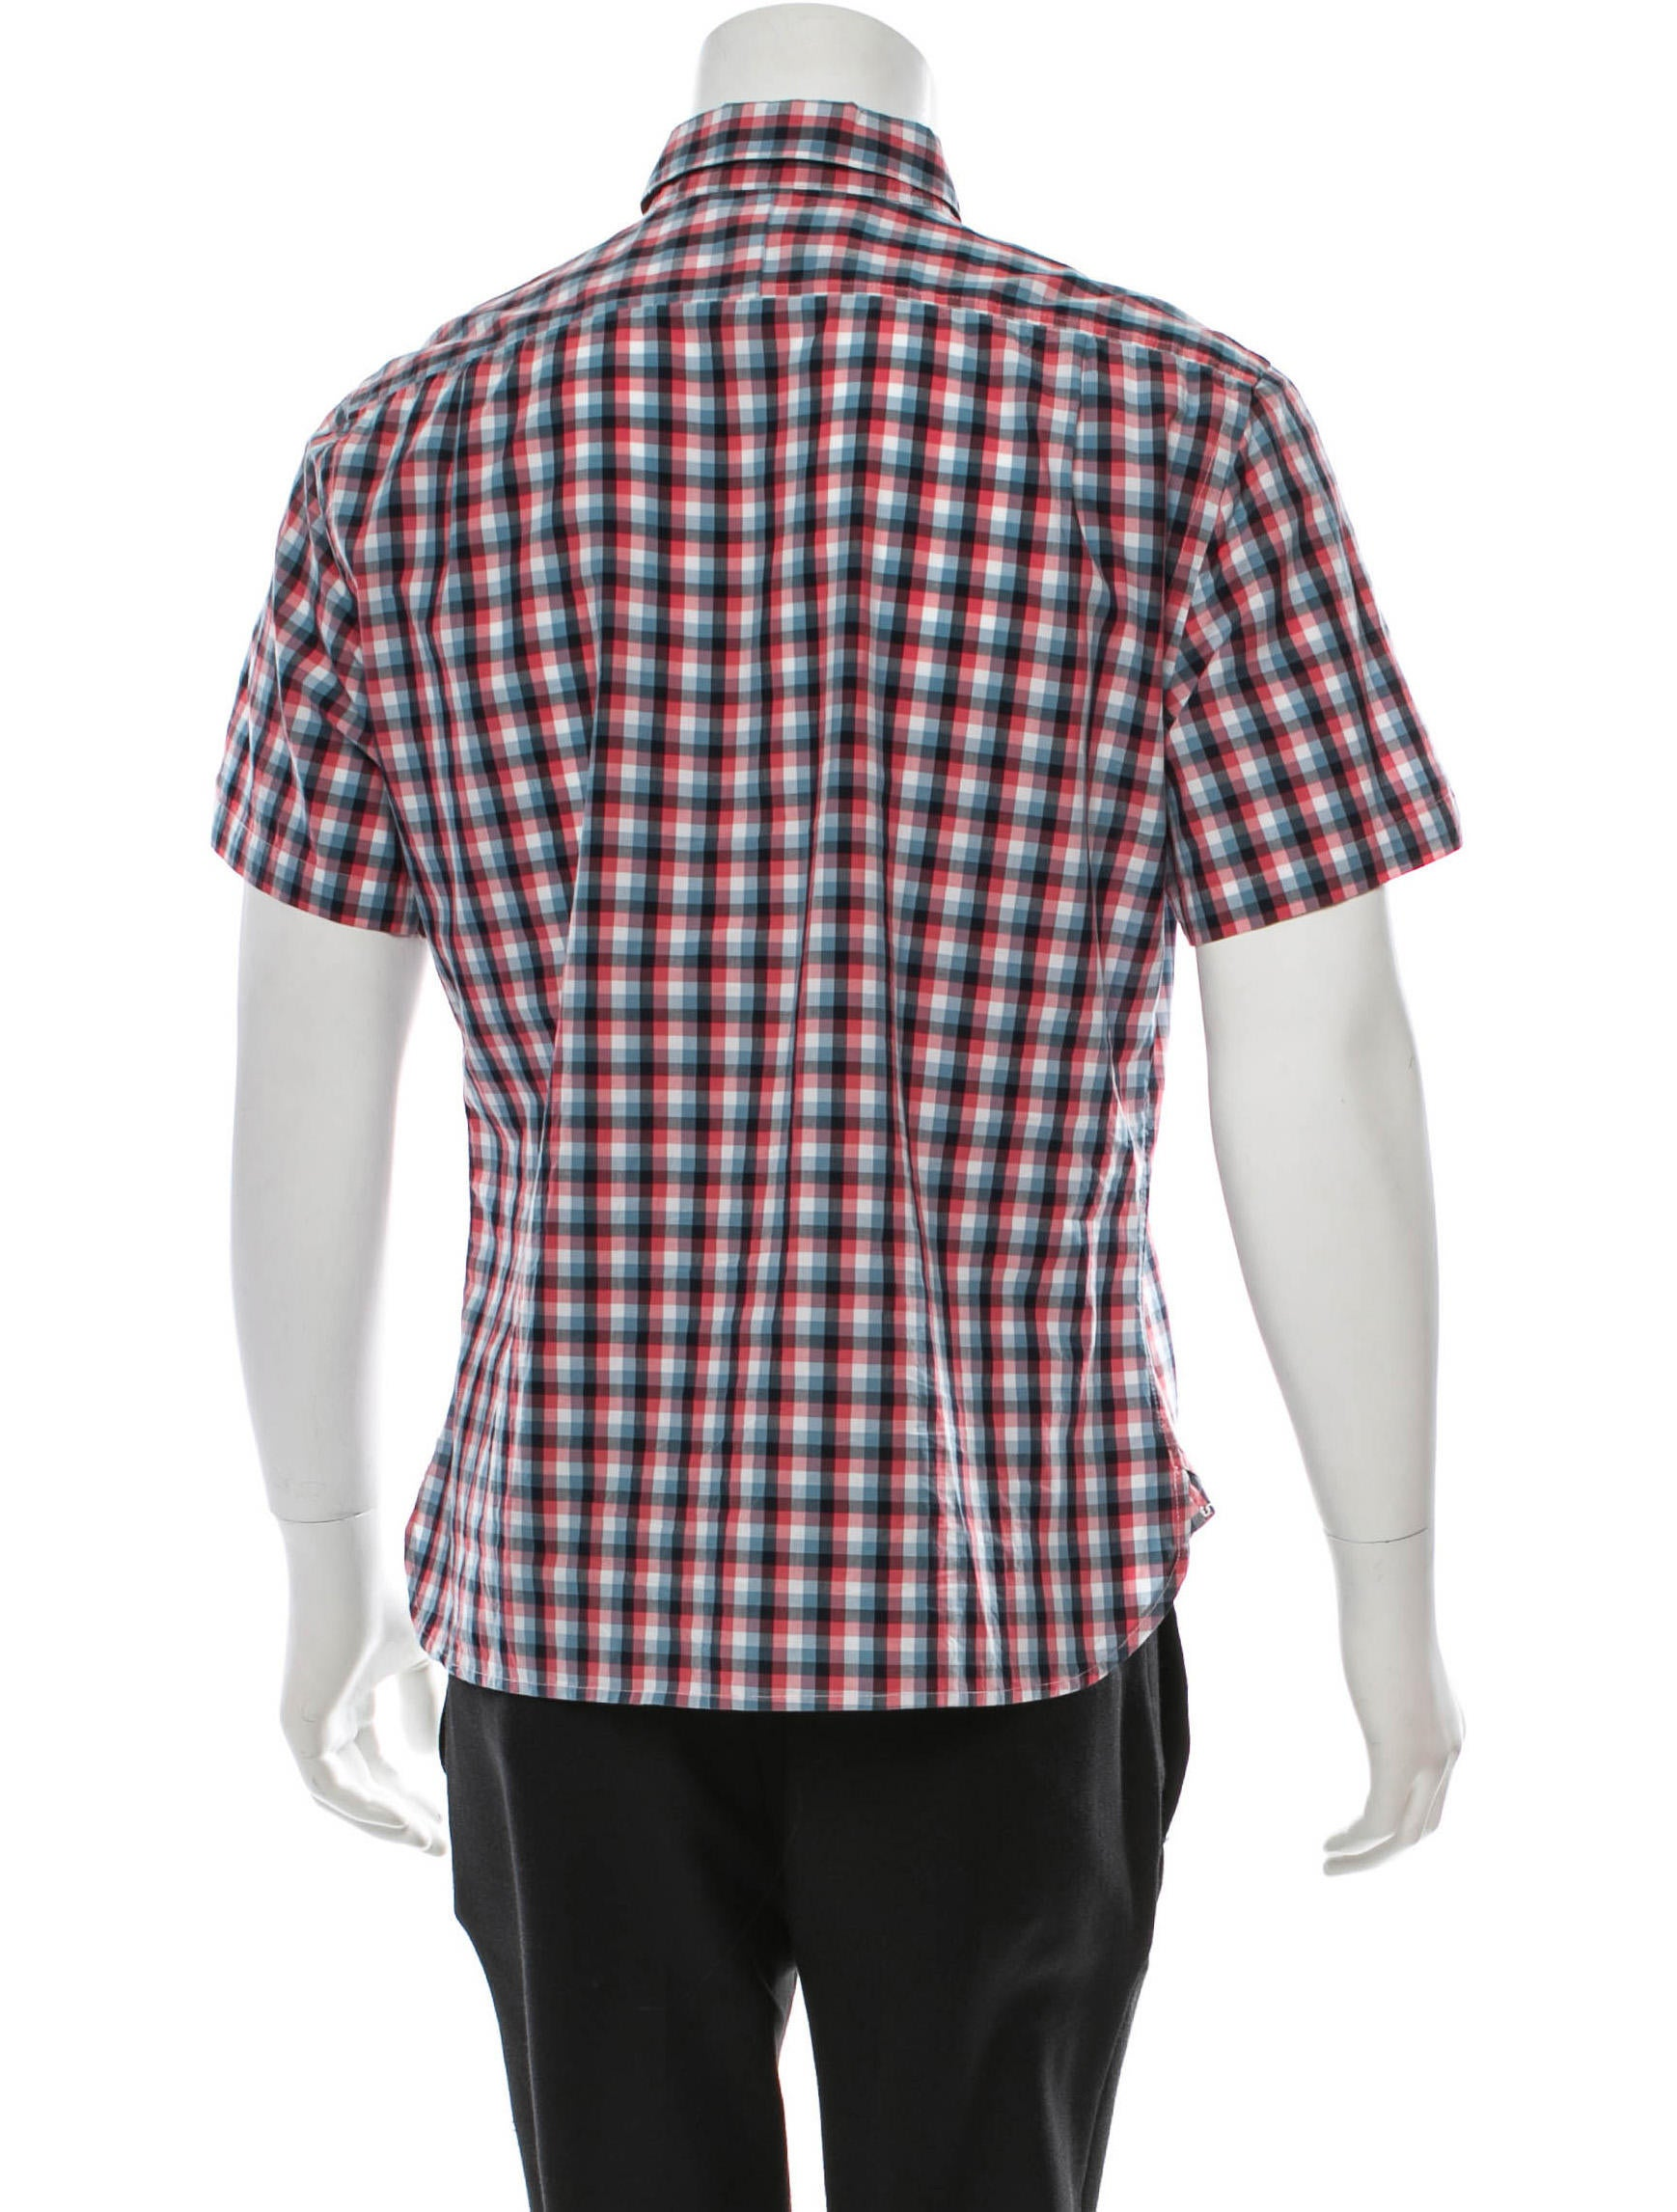 Shipley Halmos Plaid Short Sleeve Shirt Clothing: short sleeve plaid shirts